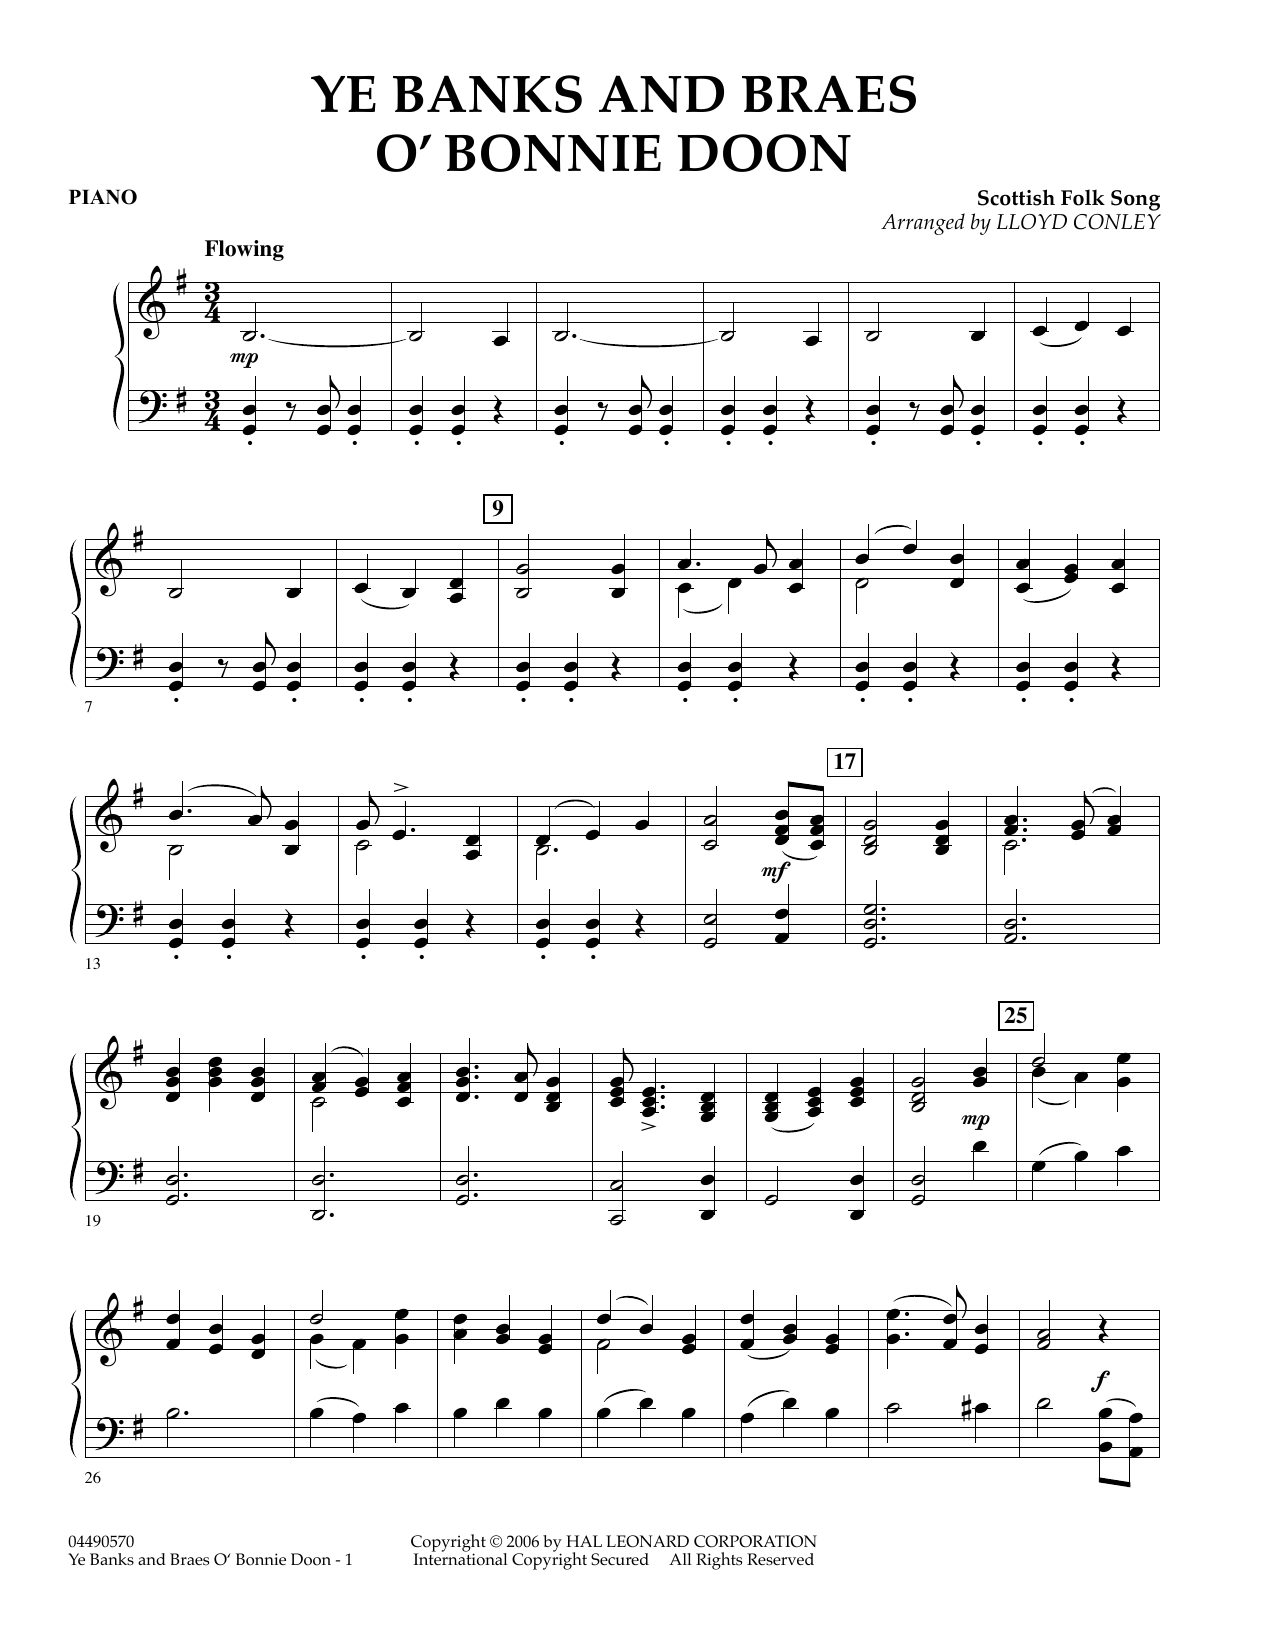 Lloyd Conley Ye Banks and Braes O' Bonnie Doon - Piano sheet music preview music notes and score for Orchestra including 2 page(s)